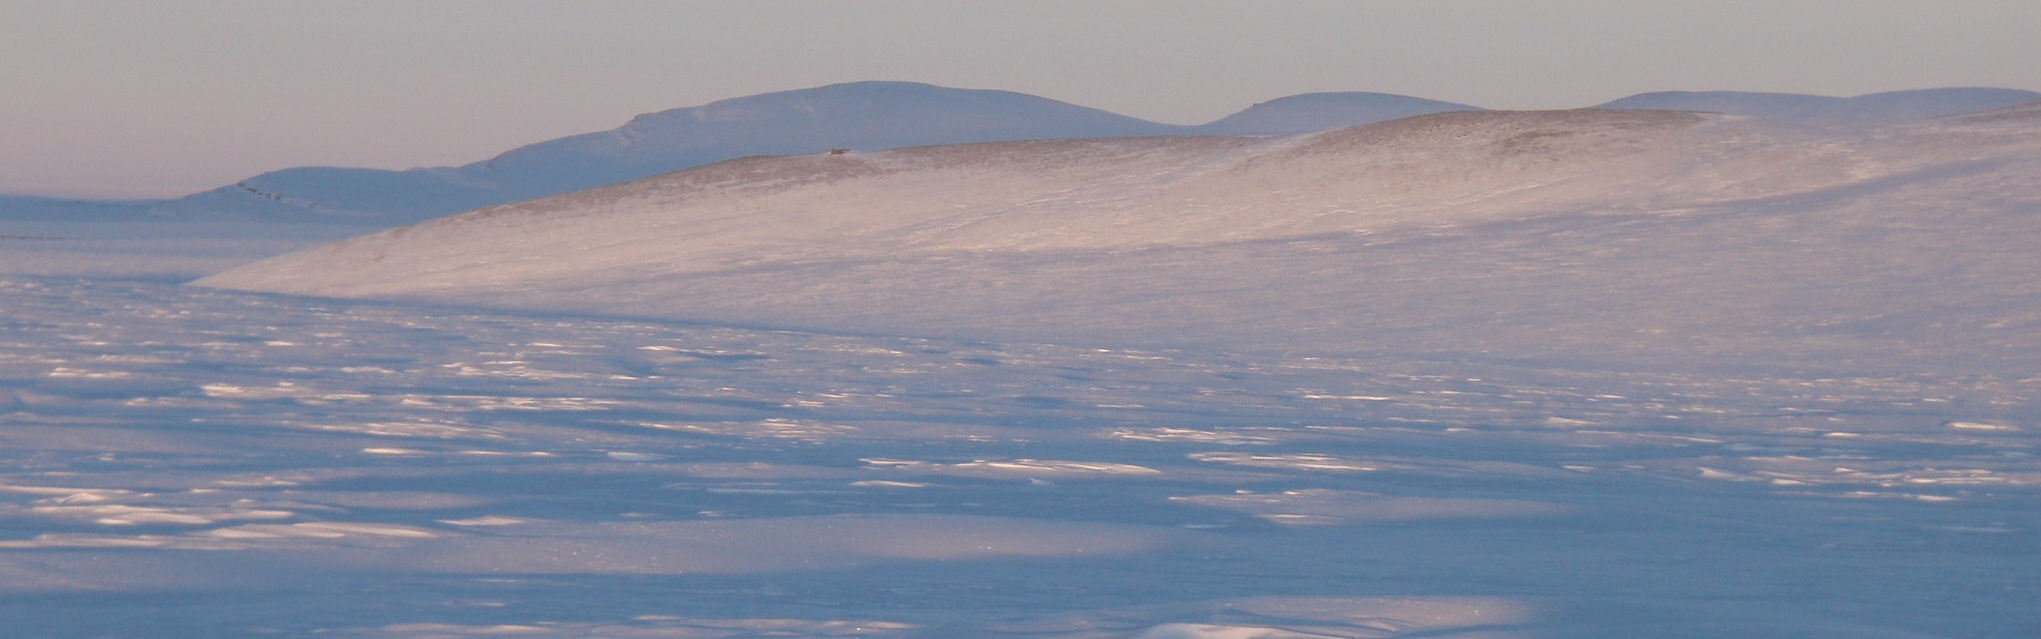 North from Dalton Hwy, photo C. Edgar